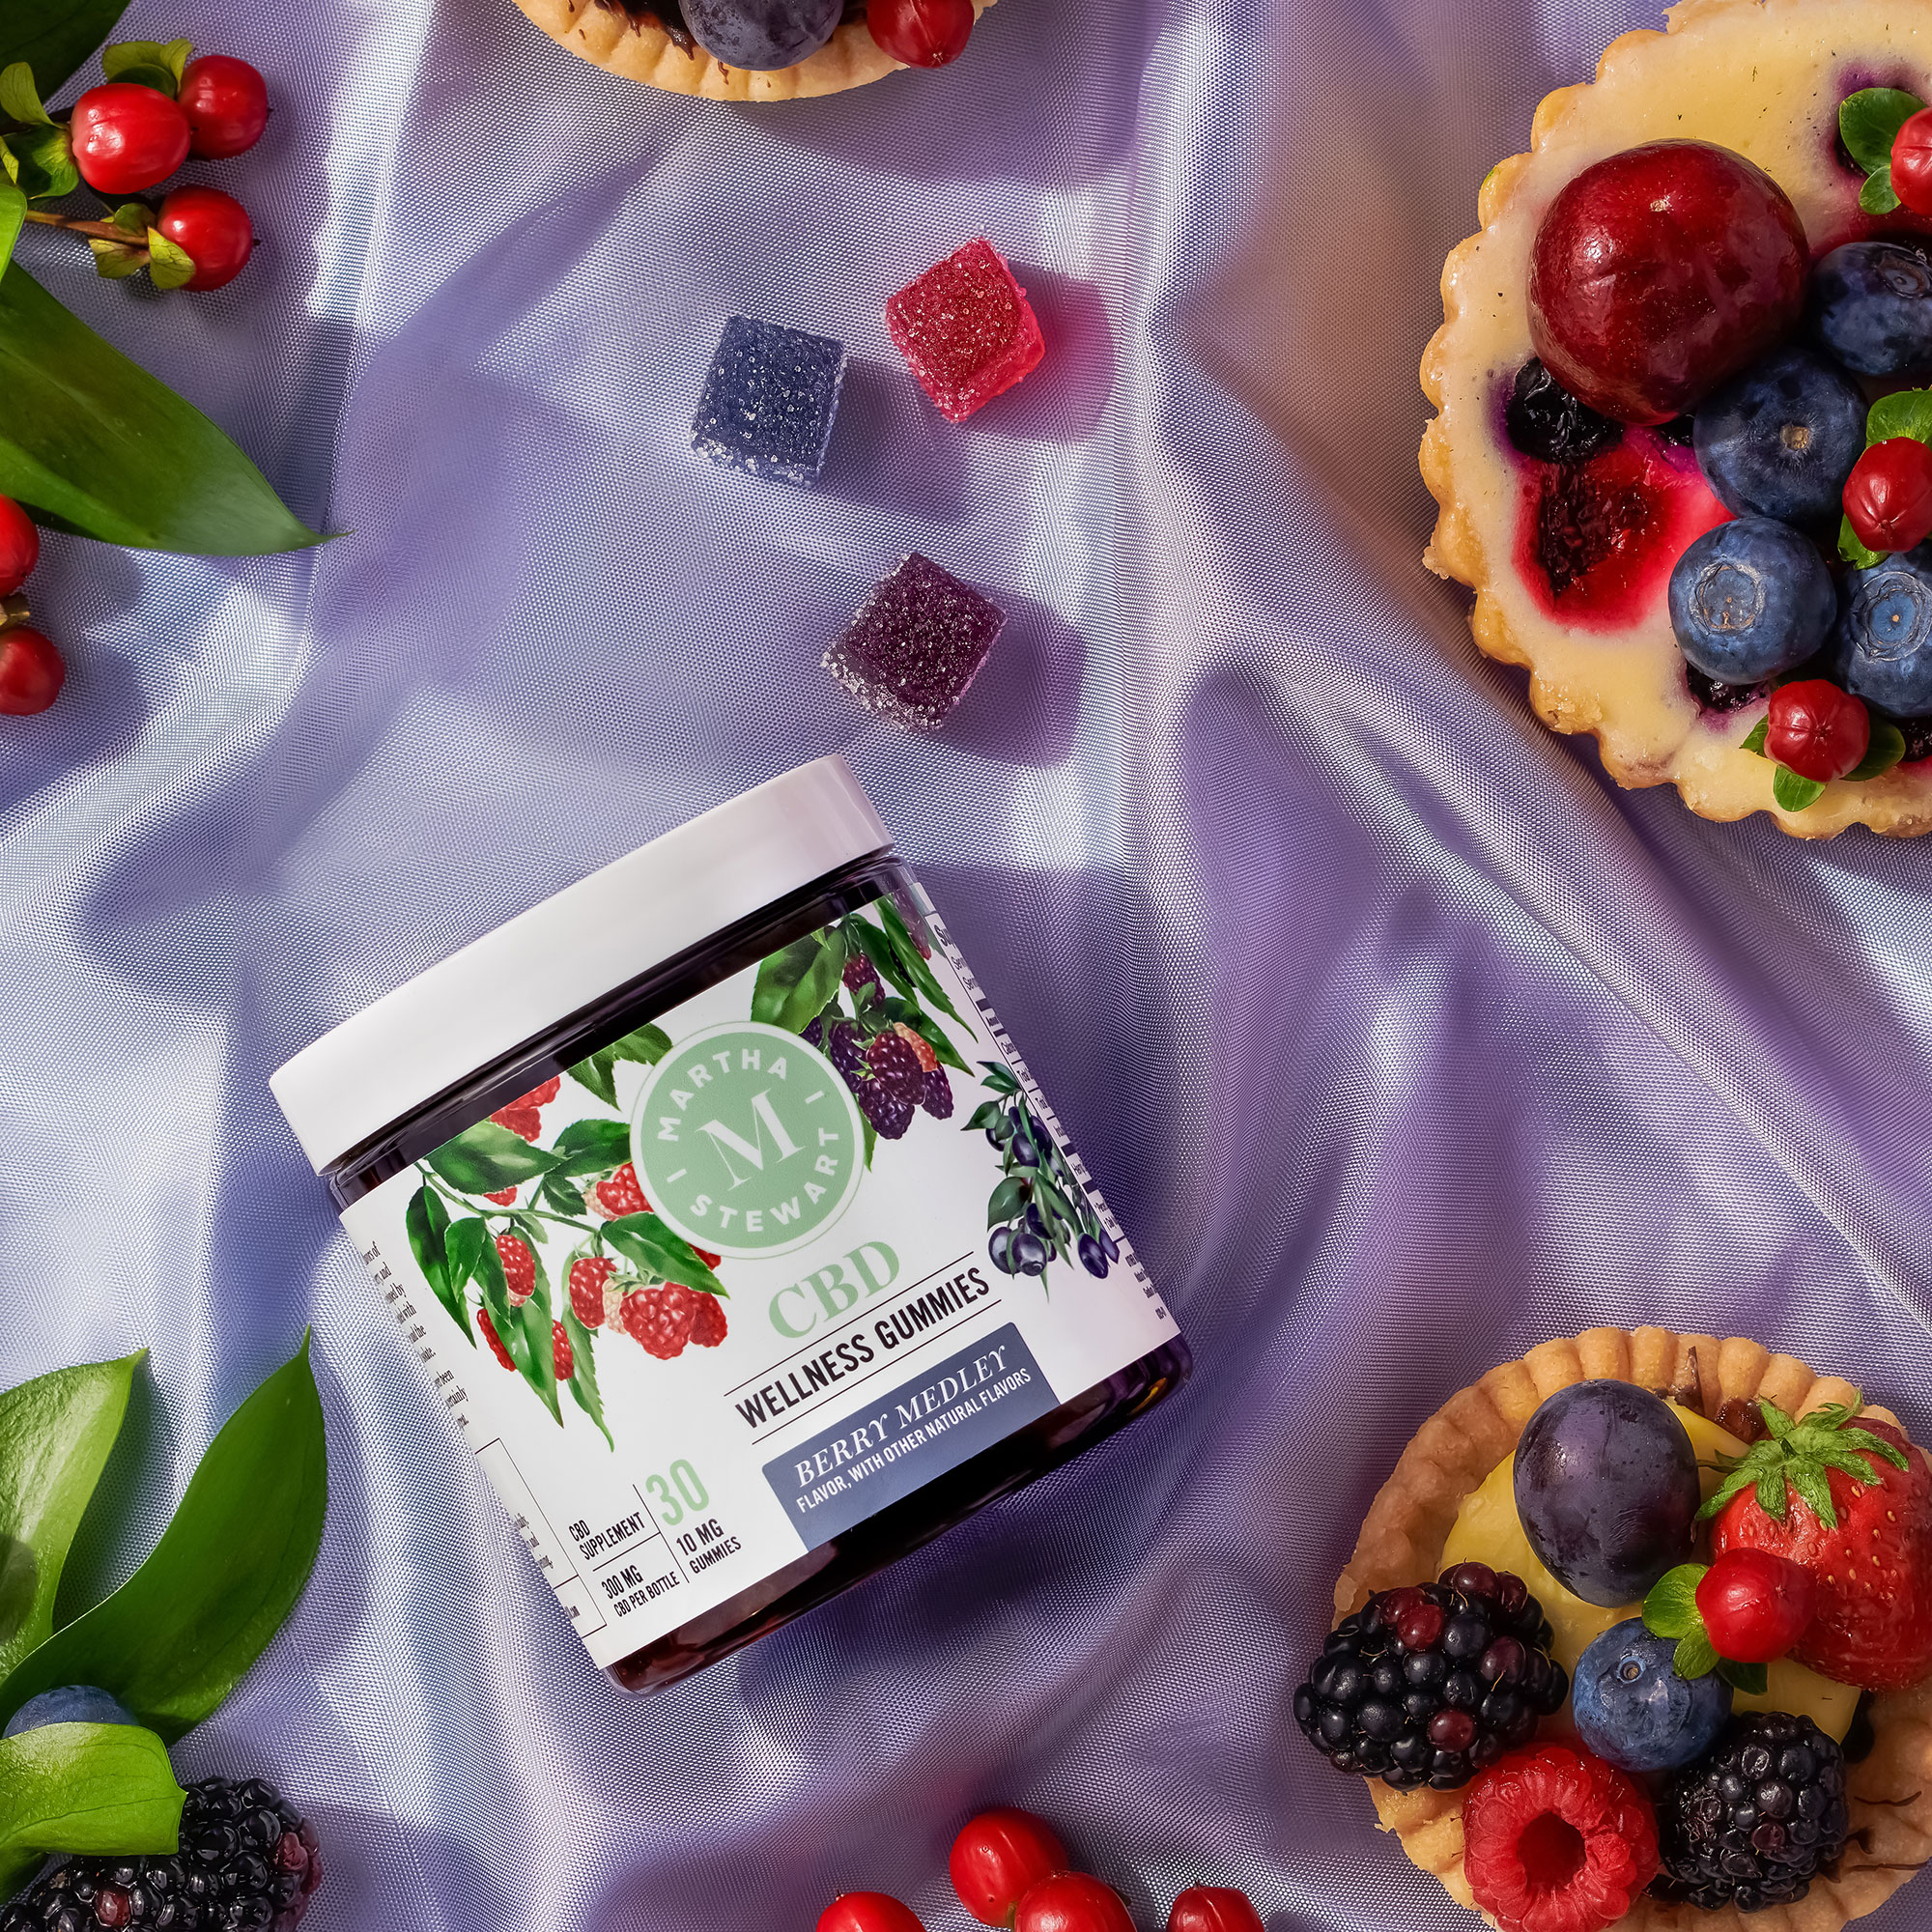 Martha Stewart CBD berry gummies